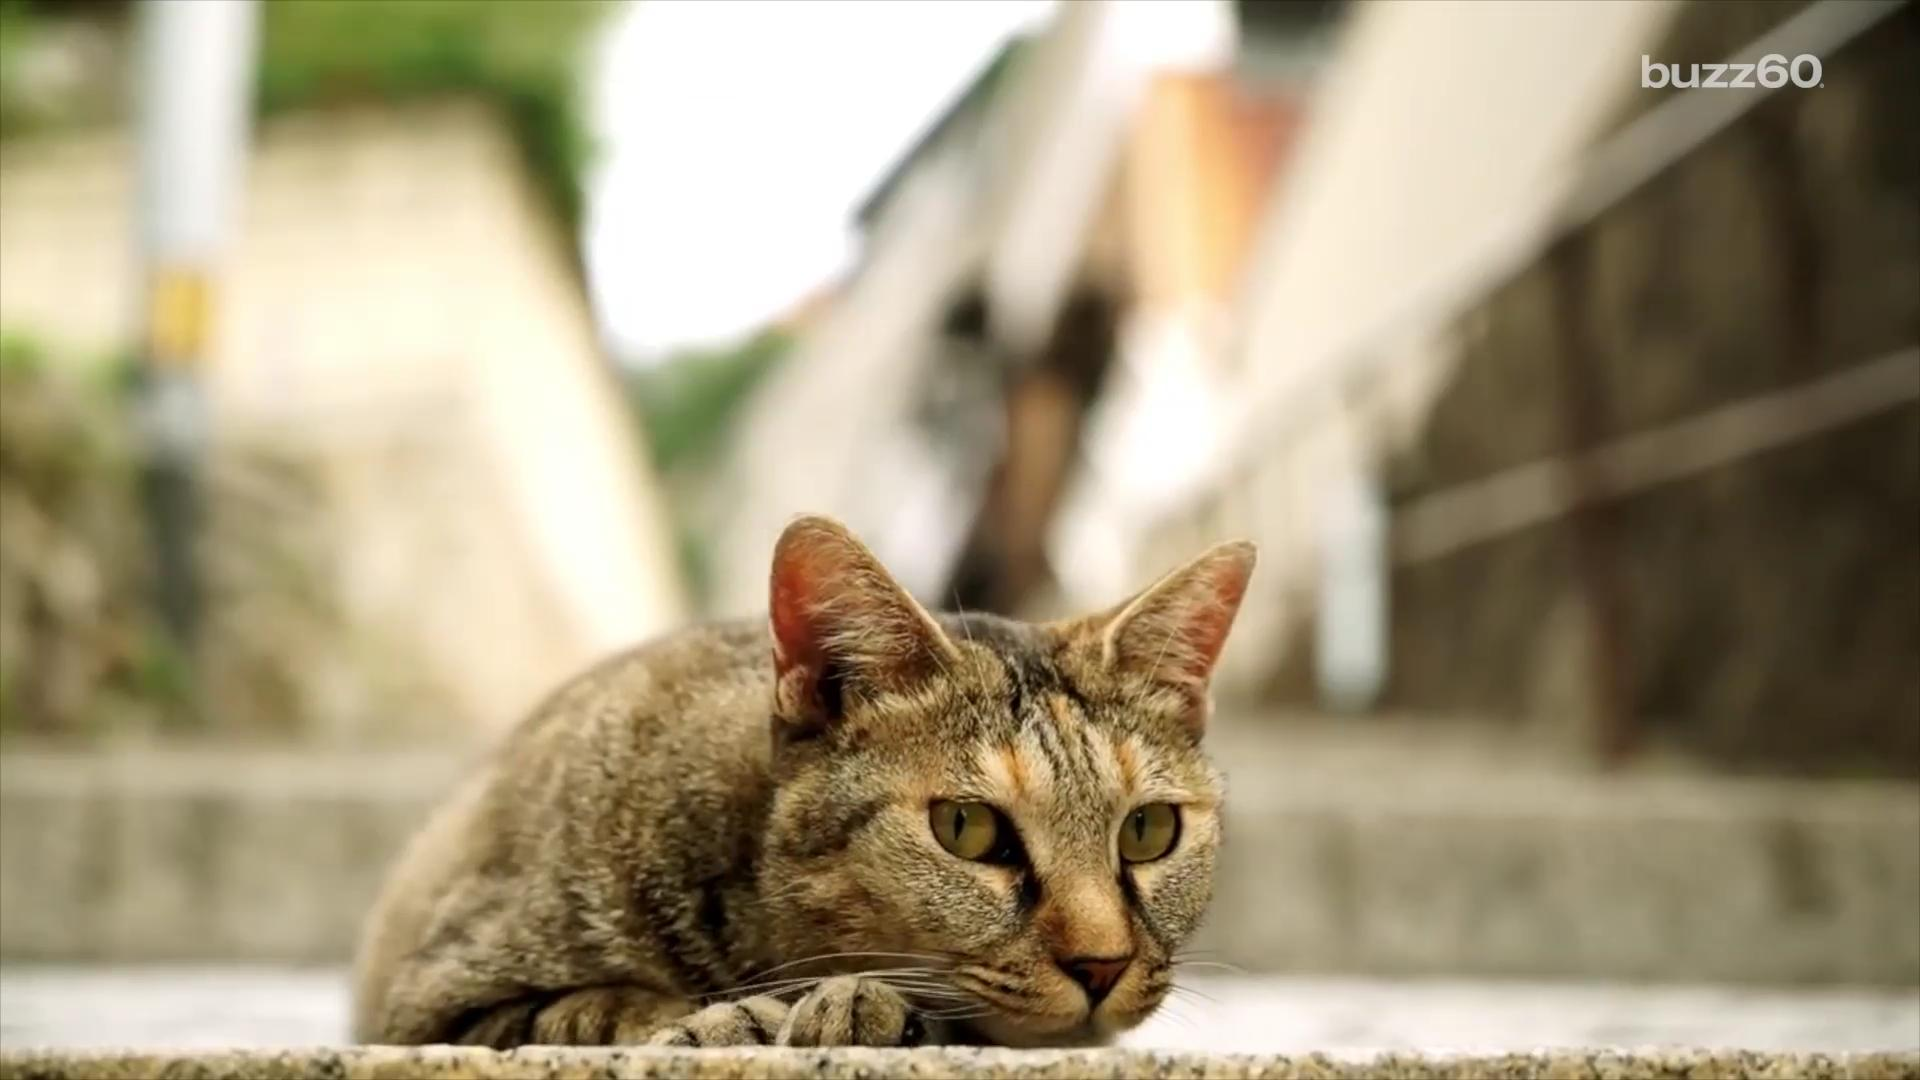 A prefecture in Japan created the world's first ever 'cat street view,' a Google-street-view-type interactive map entirely from a cat's perspective. Jen Markham (@jenmarkham) has the story.